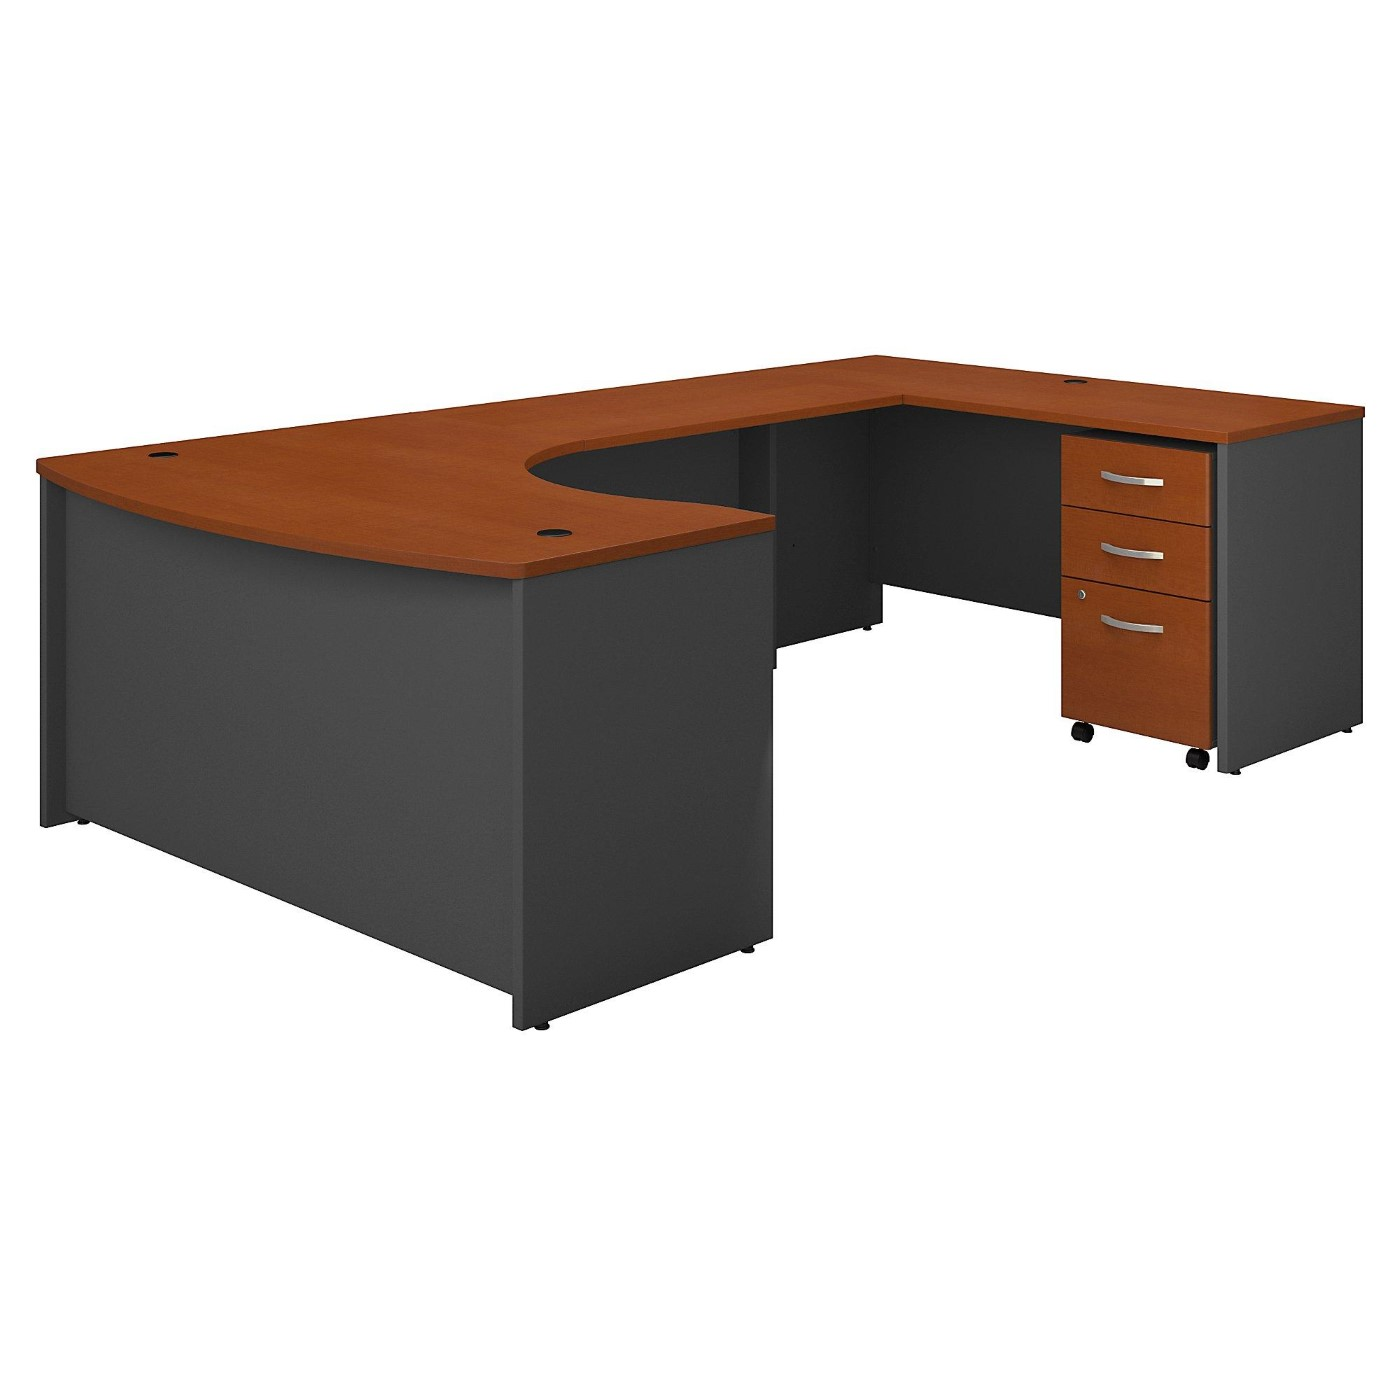 BUSH BUSINESS FURNITURE SERIES C 60W LEFT HANDED BOW FRONT U SHAPED DESK WITH MOBILE FILE CABINET. FREE SHIPPING  VIDEO BELOW.